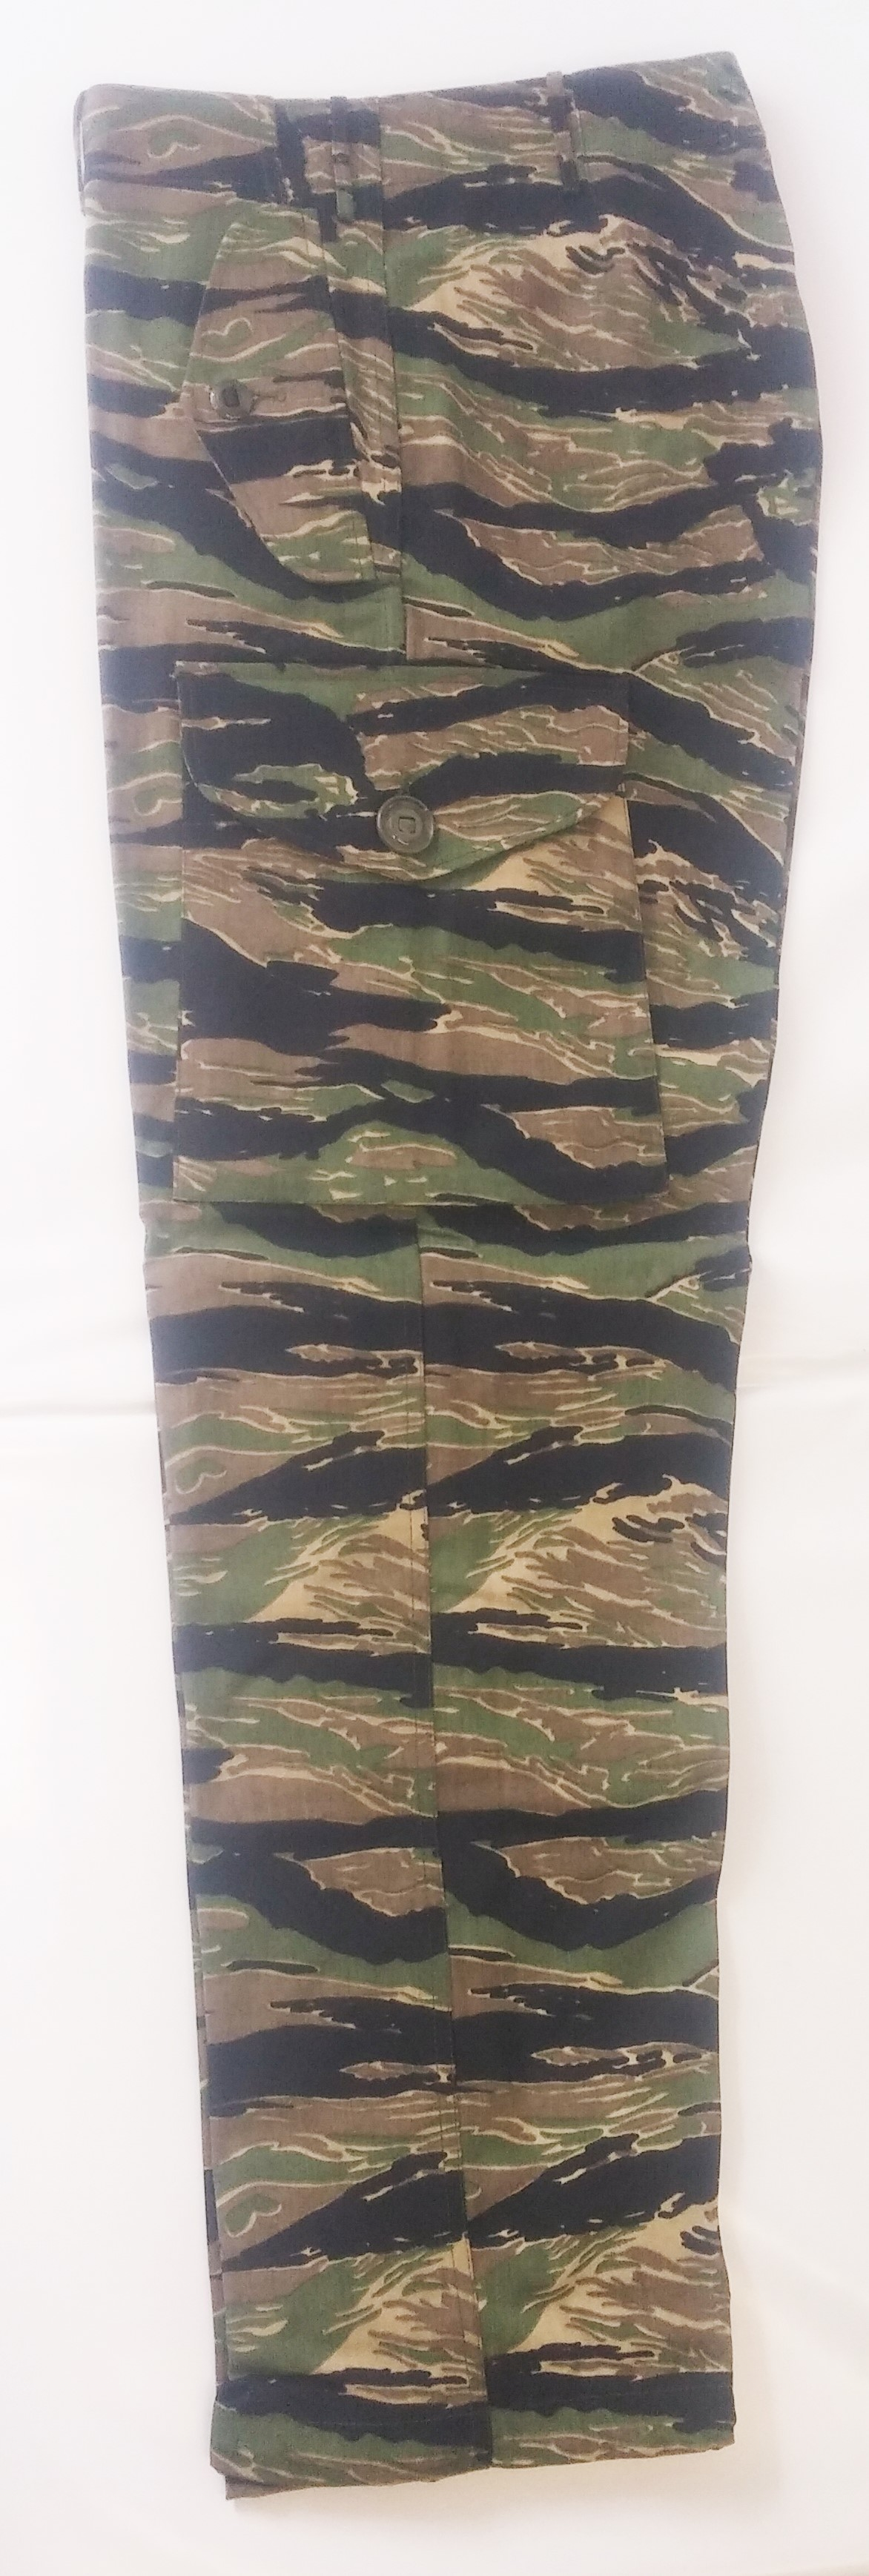 Tiger combat style camo